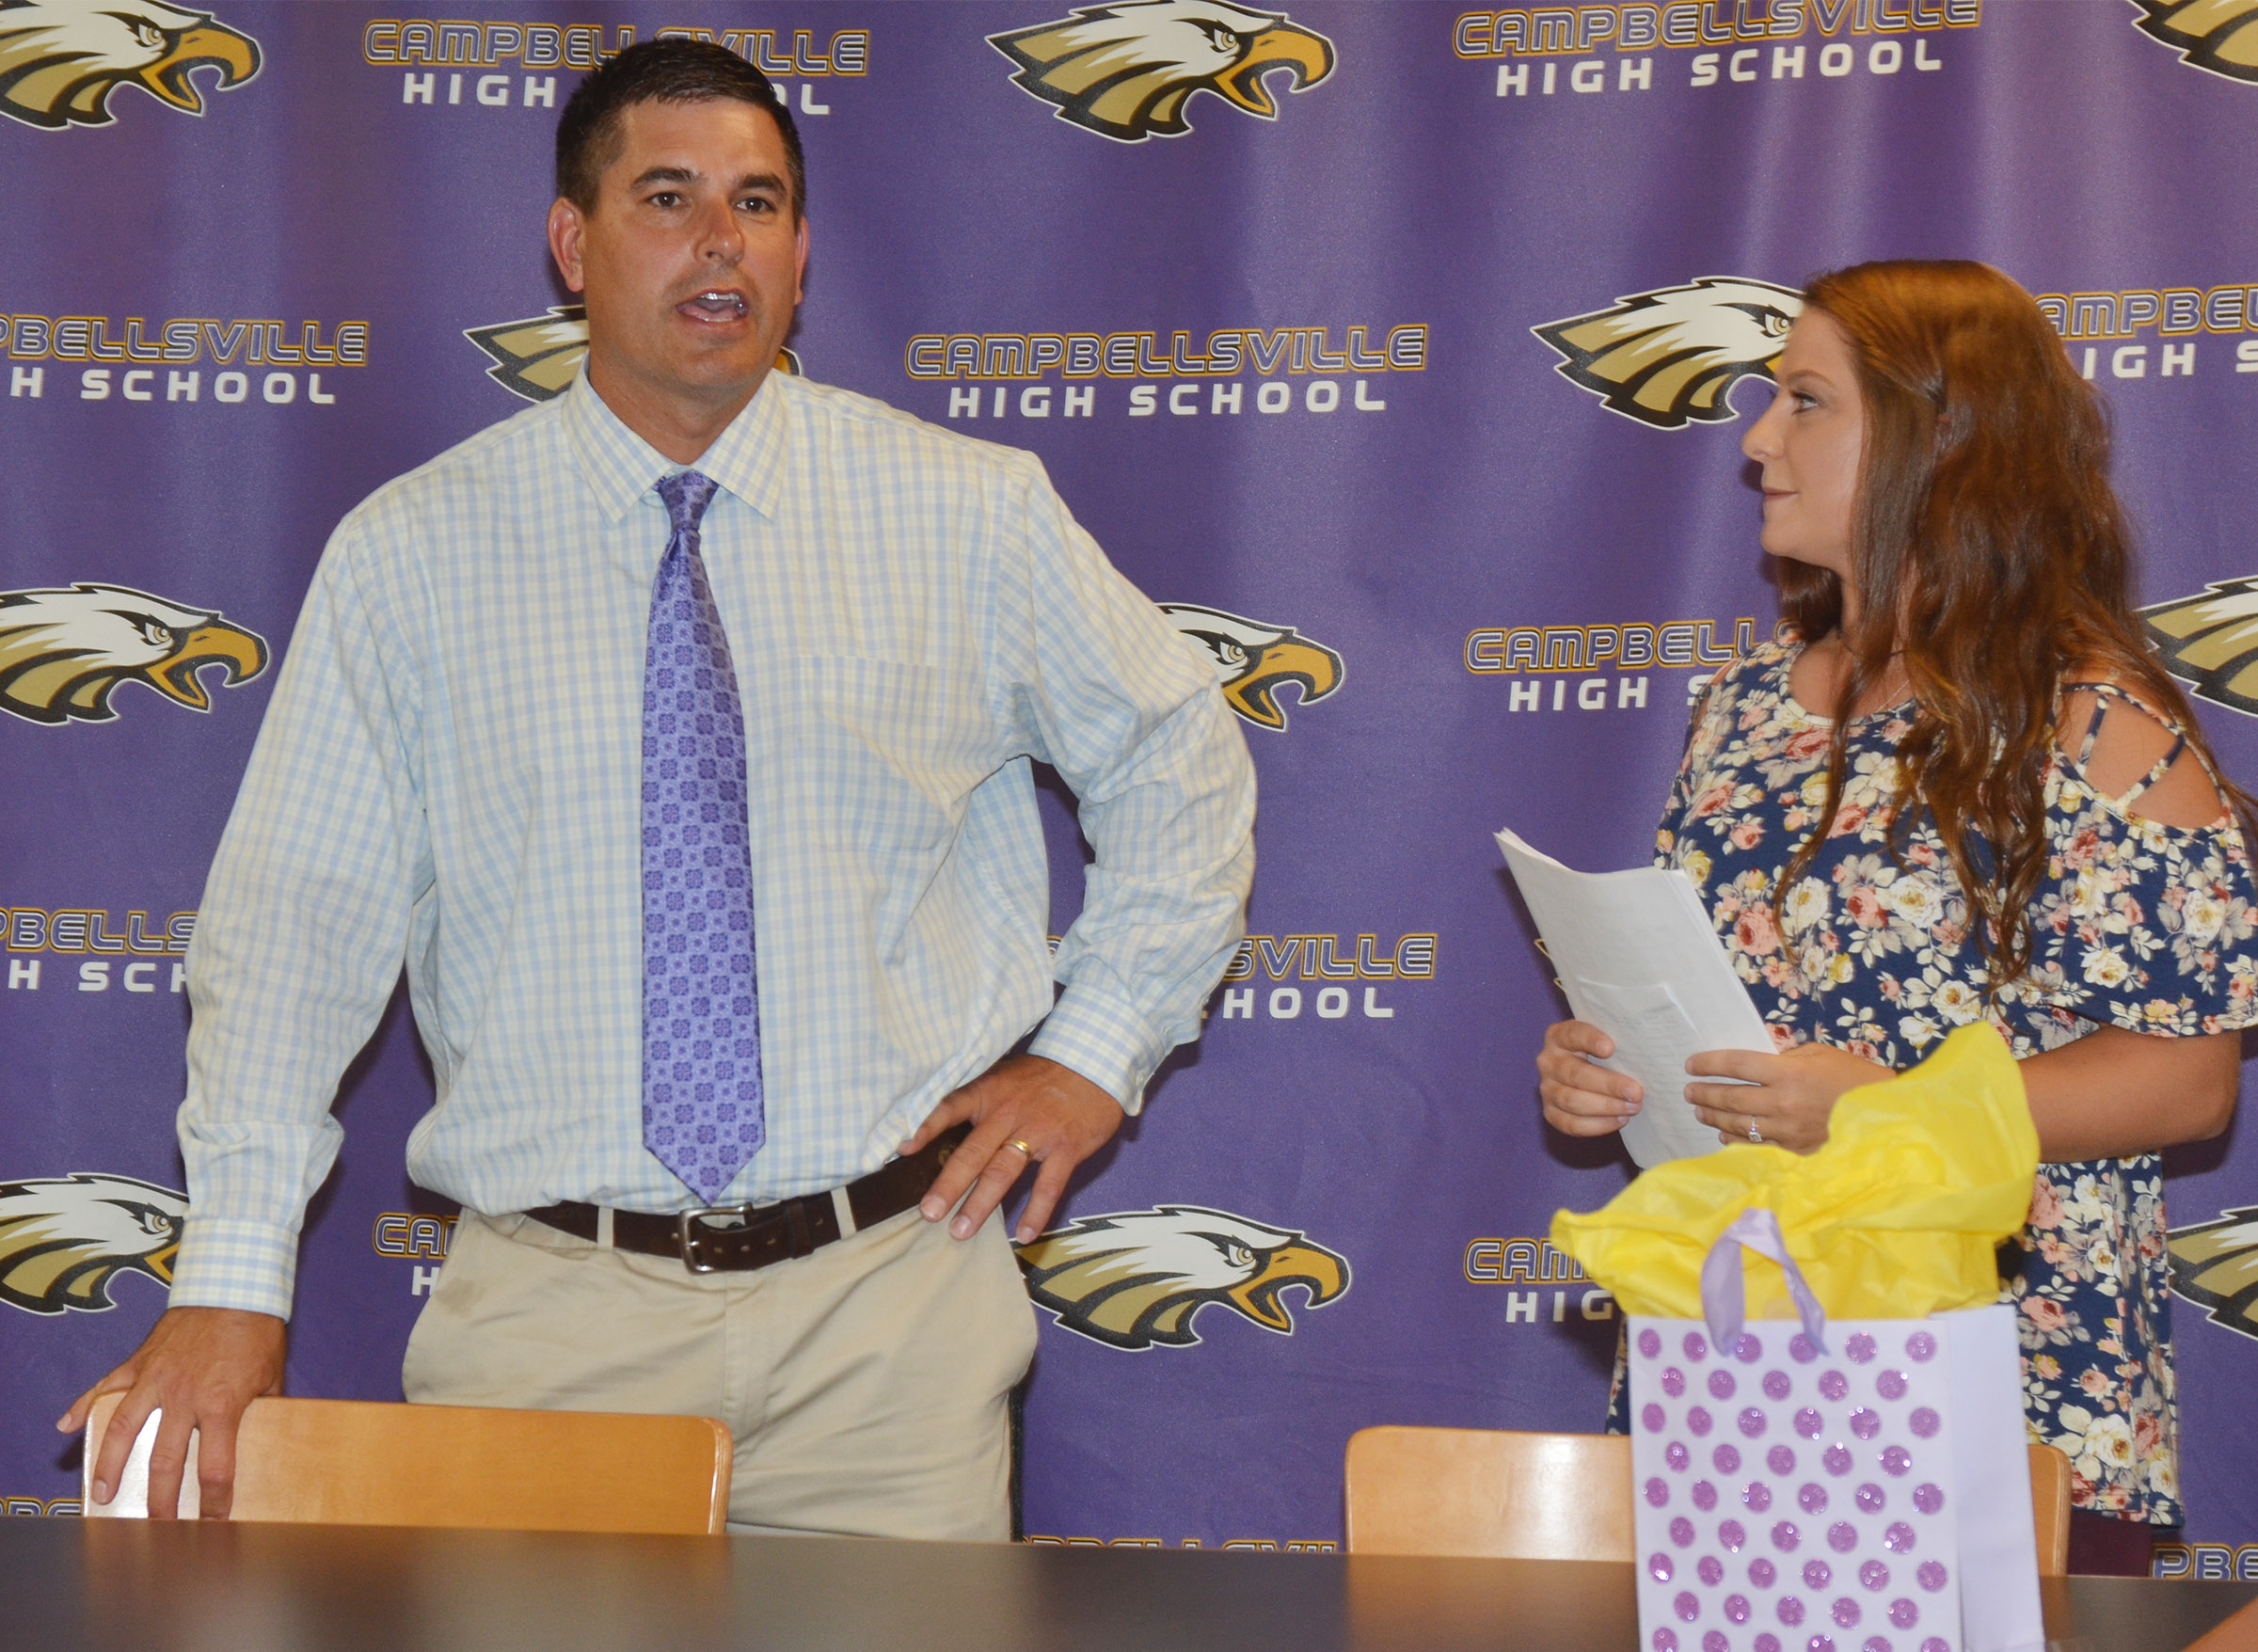 CHS Principal Kirby Smith introduces Cassidy Scantland as the new boys' golf coach.